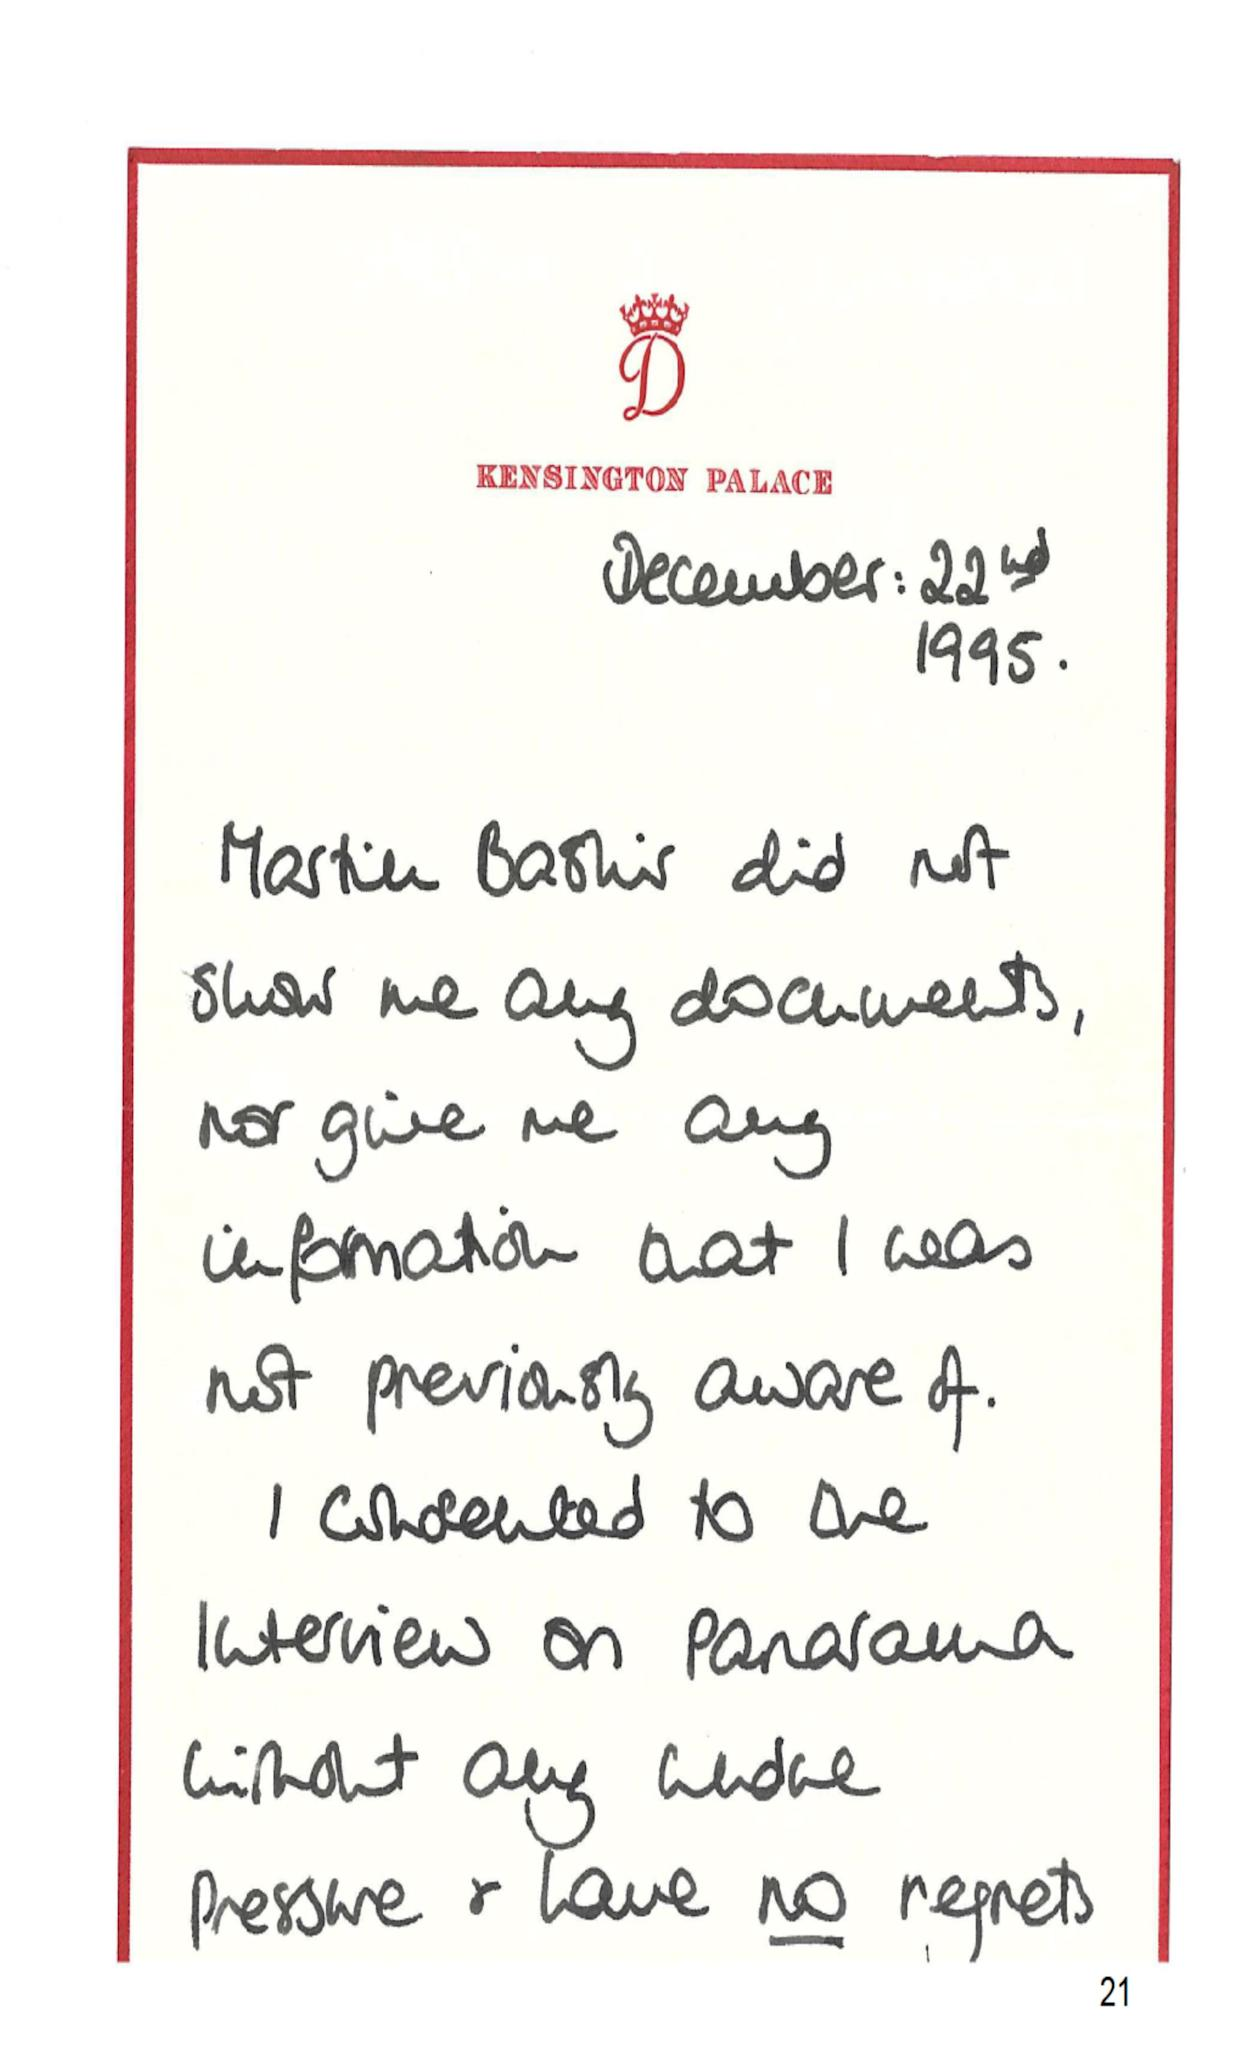 The letter written by Princess Diana to Martin Bashir after her 1995 Panorama interview with him, as published in an annex to Lord Dyson's independent investigation into the circumstances around the program. (Photo: PA/BBC)